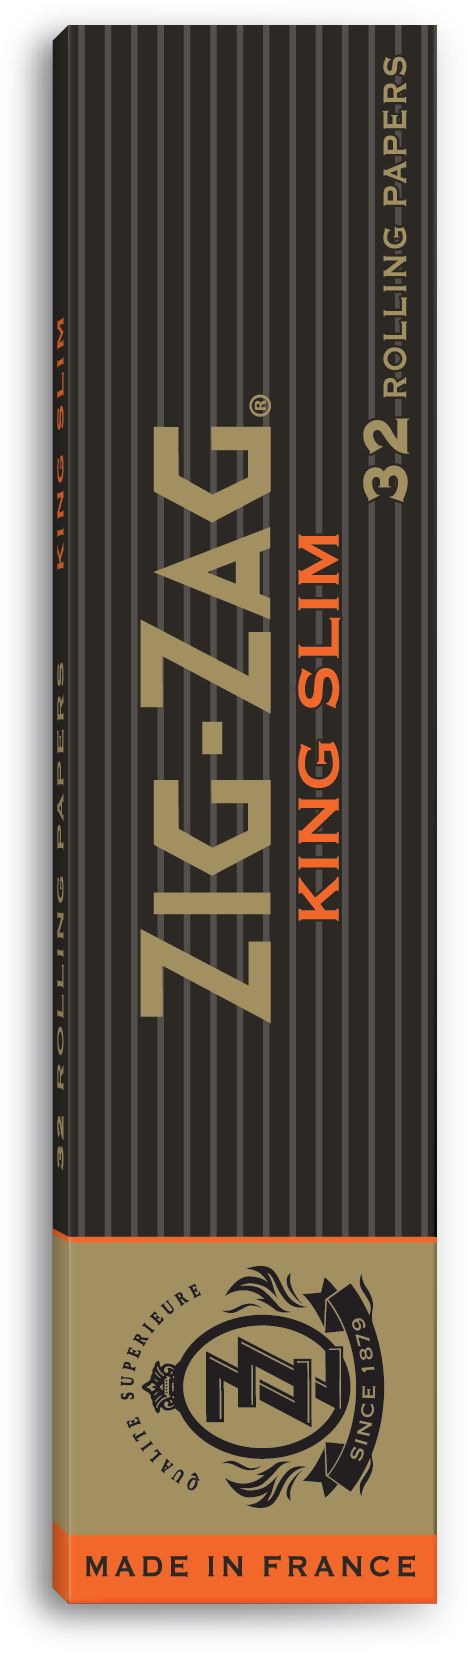 Zig Zag King Slim Papers